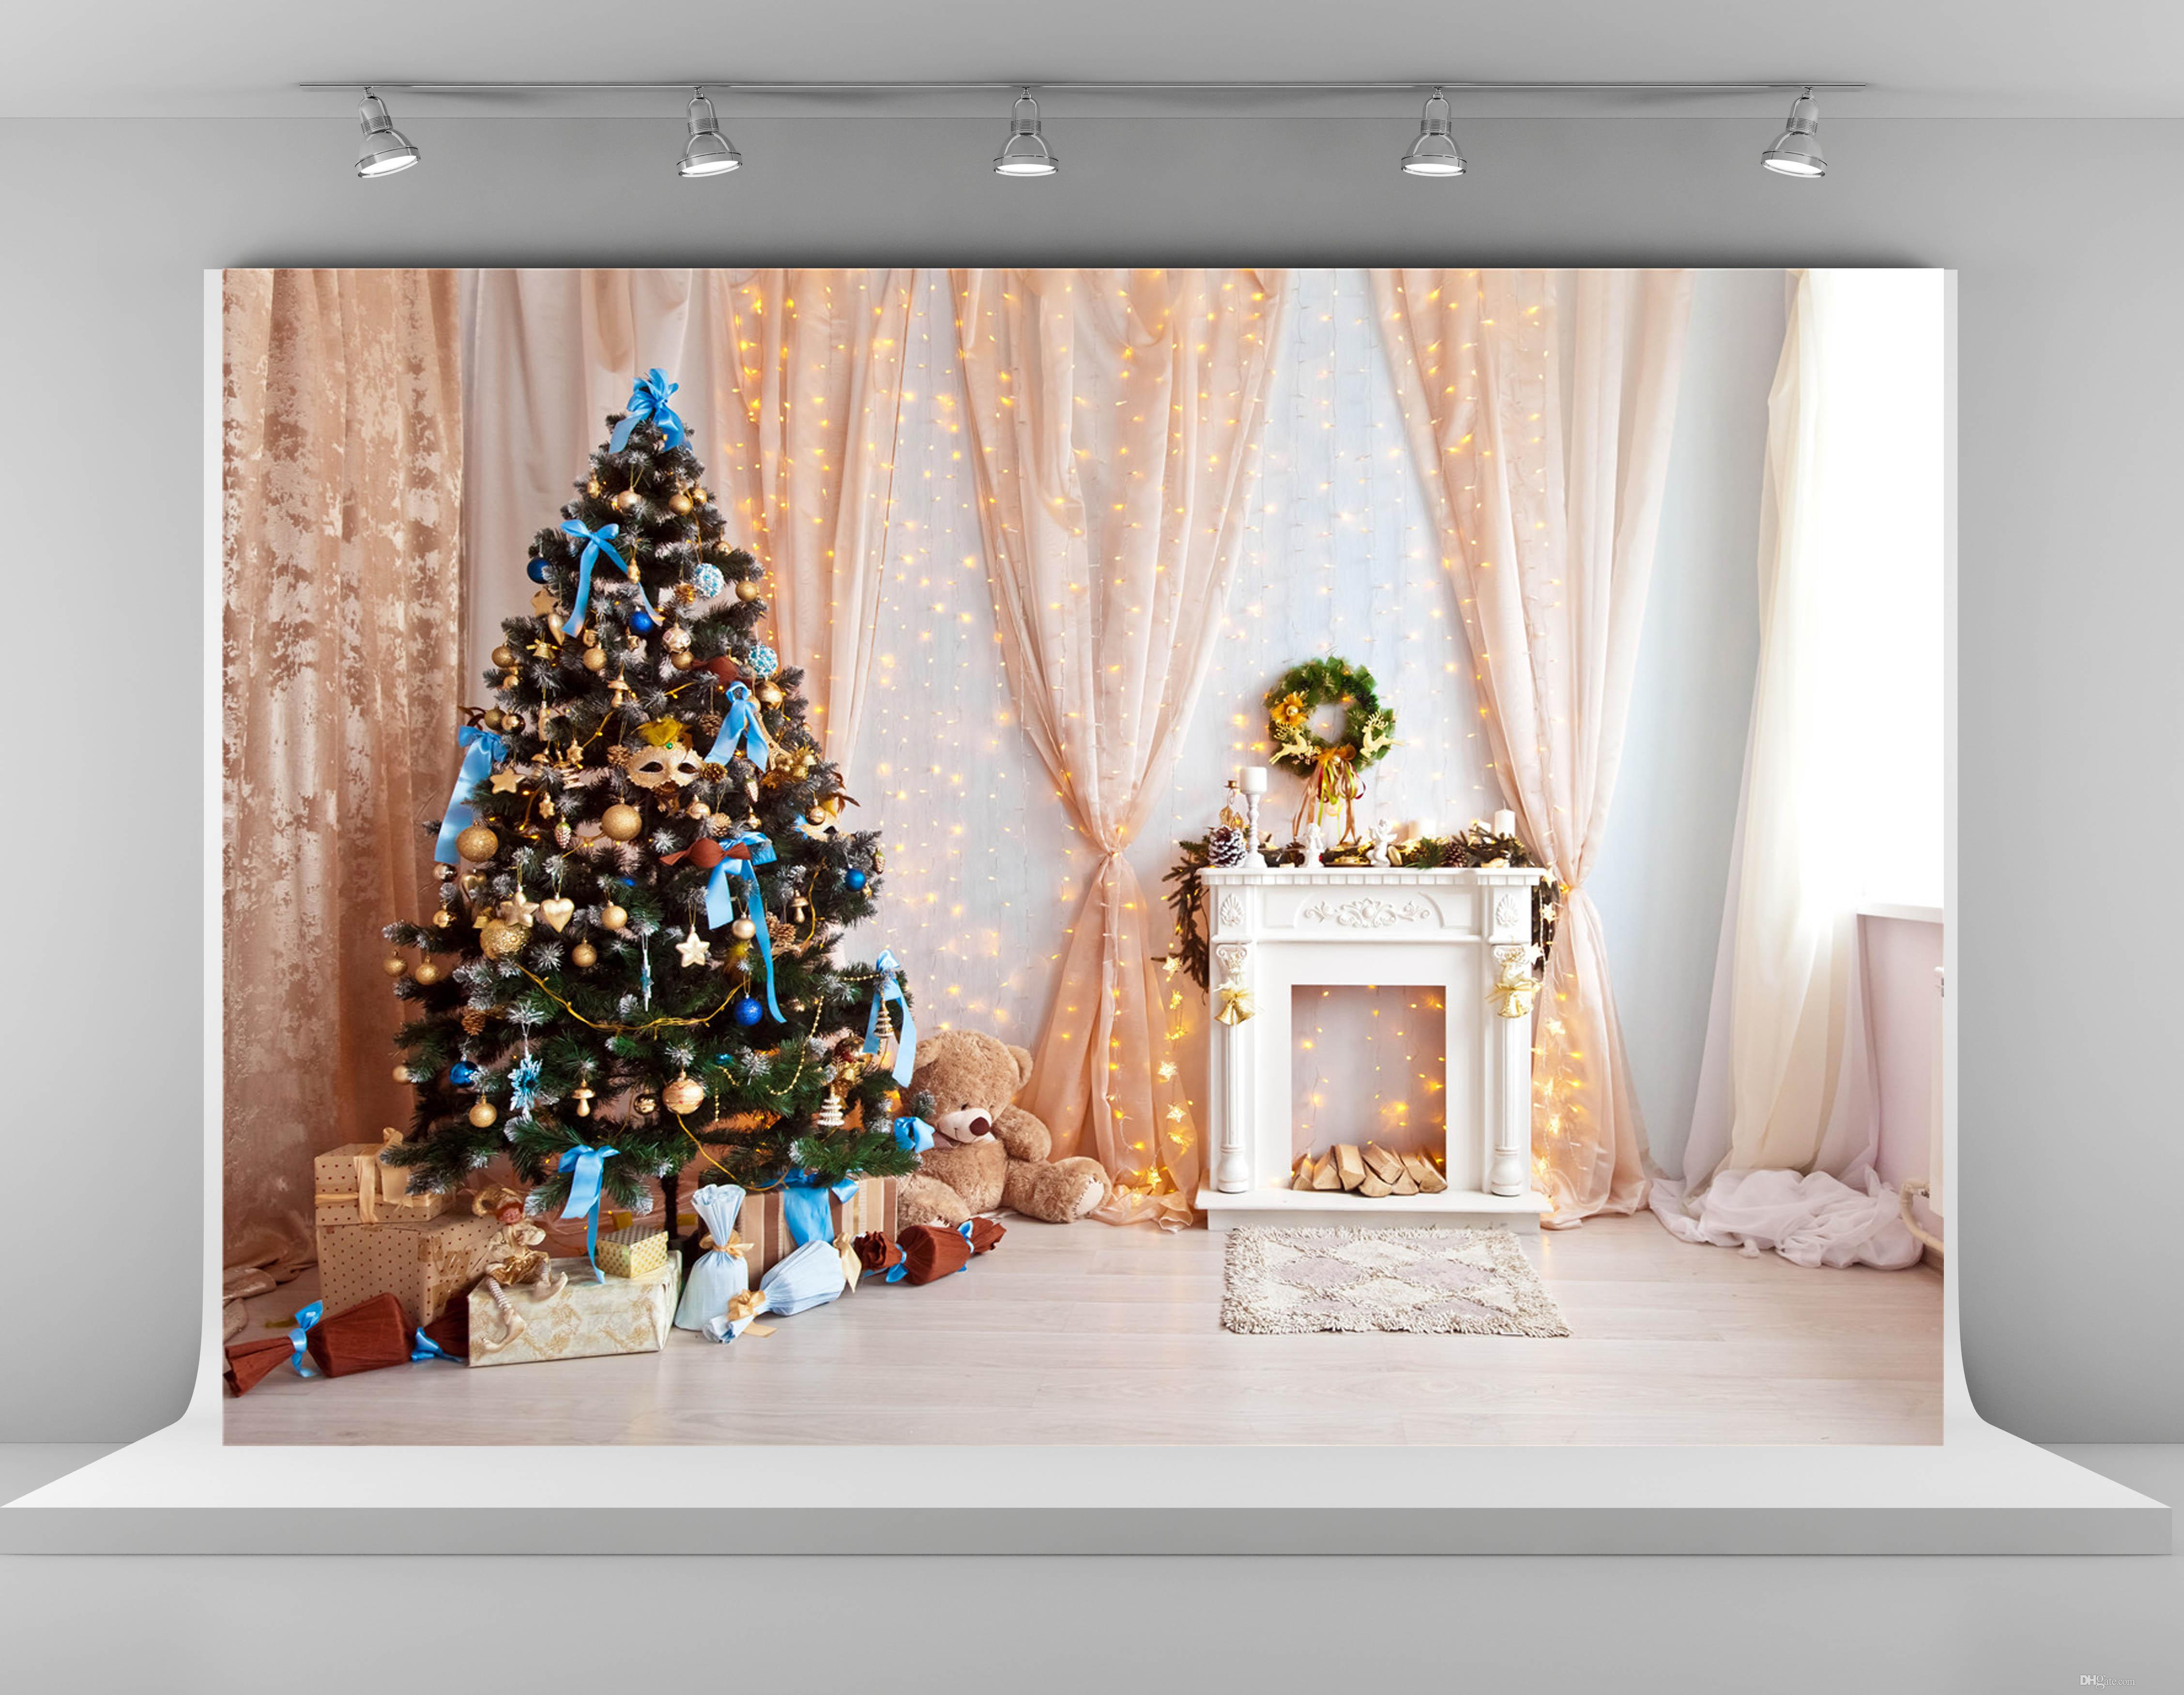 Indoor Fireplace Christmas Tree Photography Background: Digital Printing Christmas Photography Backdrops Pink